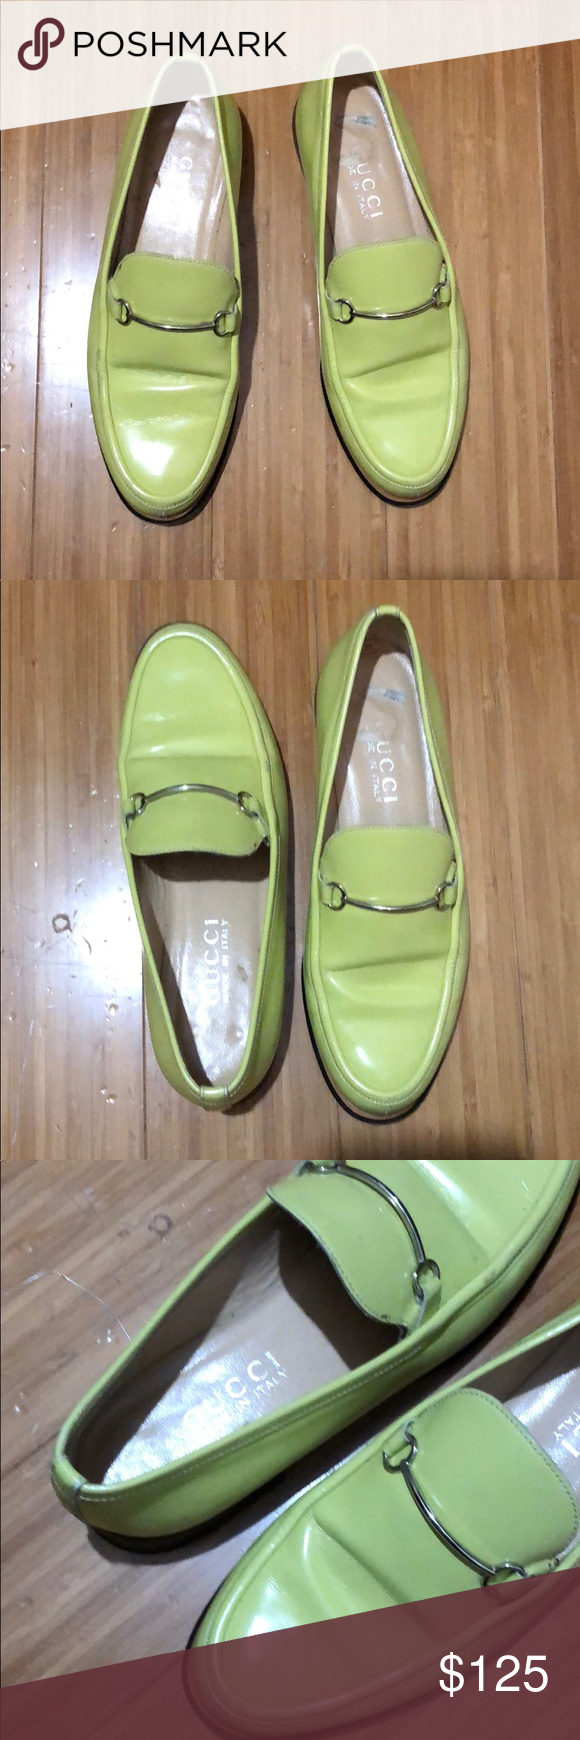 5821029ac24 Gucci Neon Lime Horsebit Loafers GUC - neon lime yellow leather Horsebit  loafers - US 6B